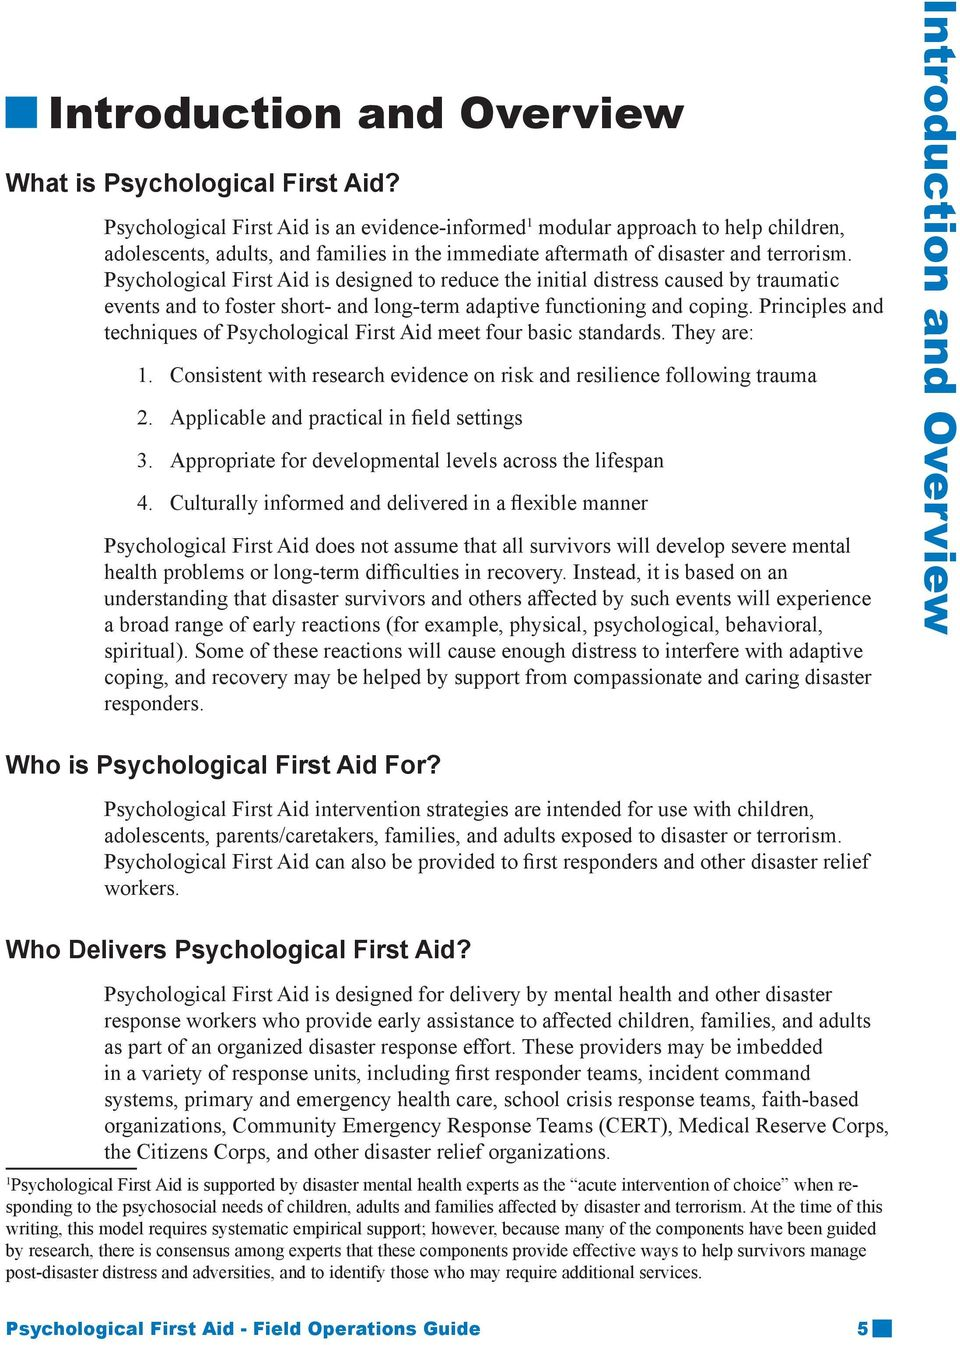 Psychological First Aid is designed to reduce the initial distress caused by traumatic events and to foster short- and long-term adaptive functioning and coping.